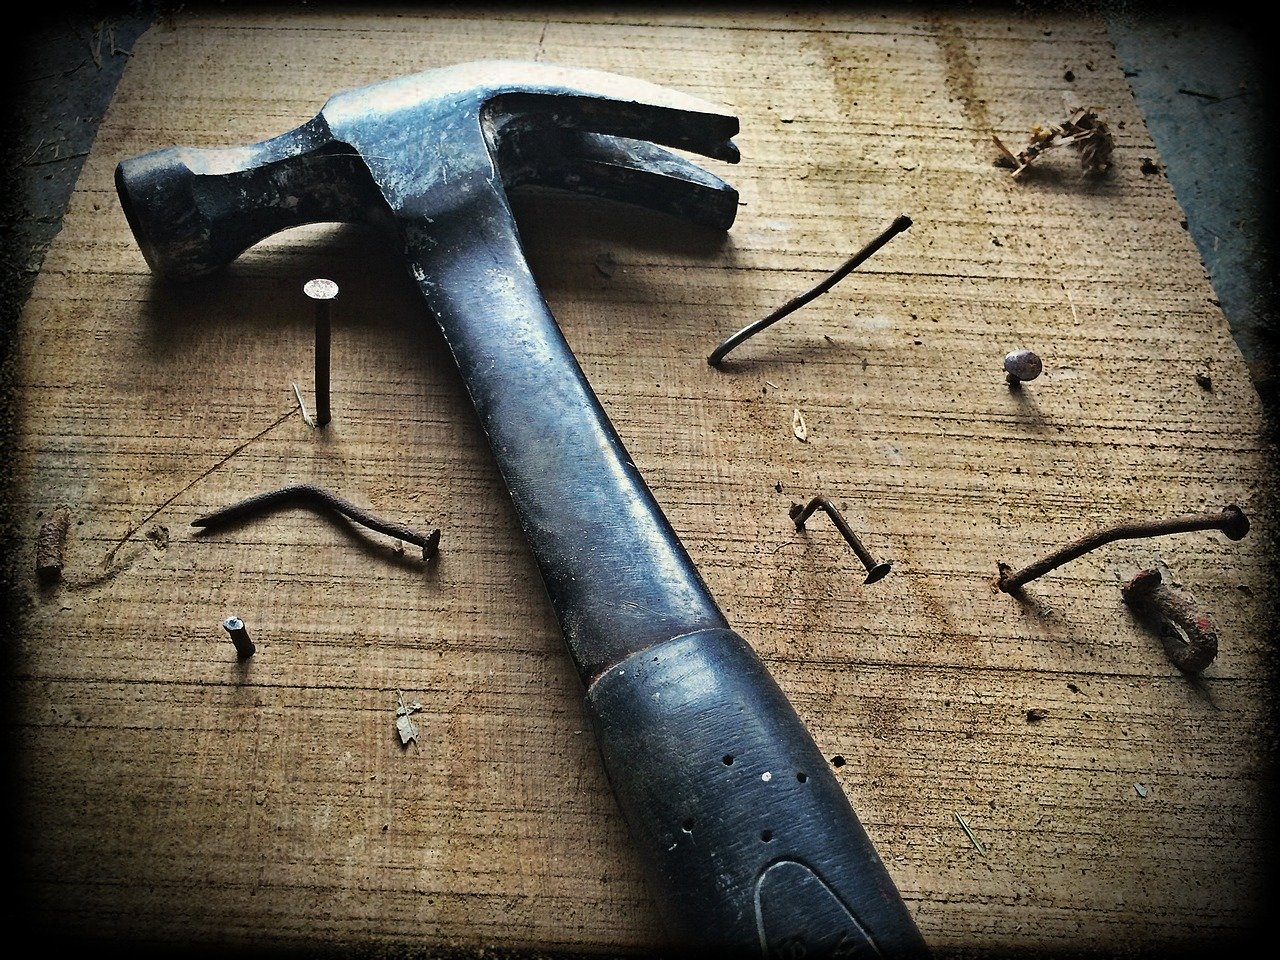 hammer, nails, wood